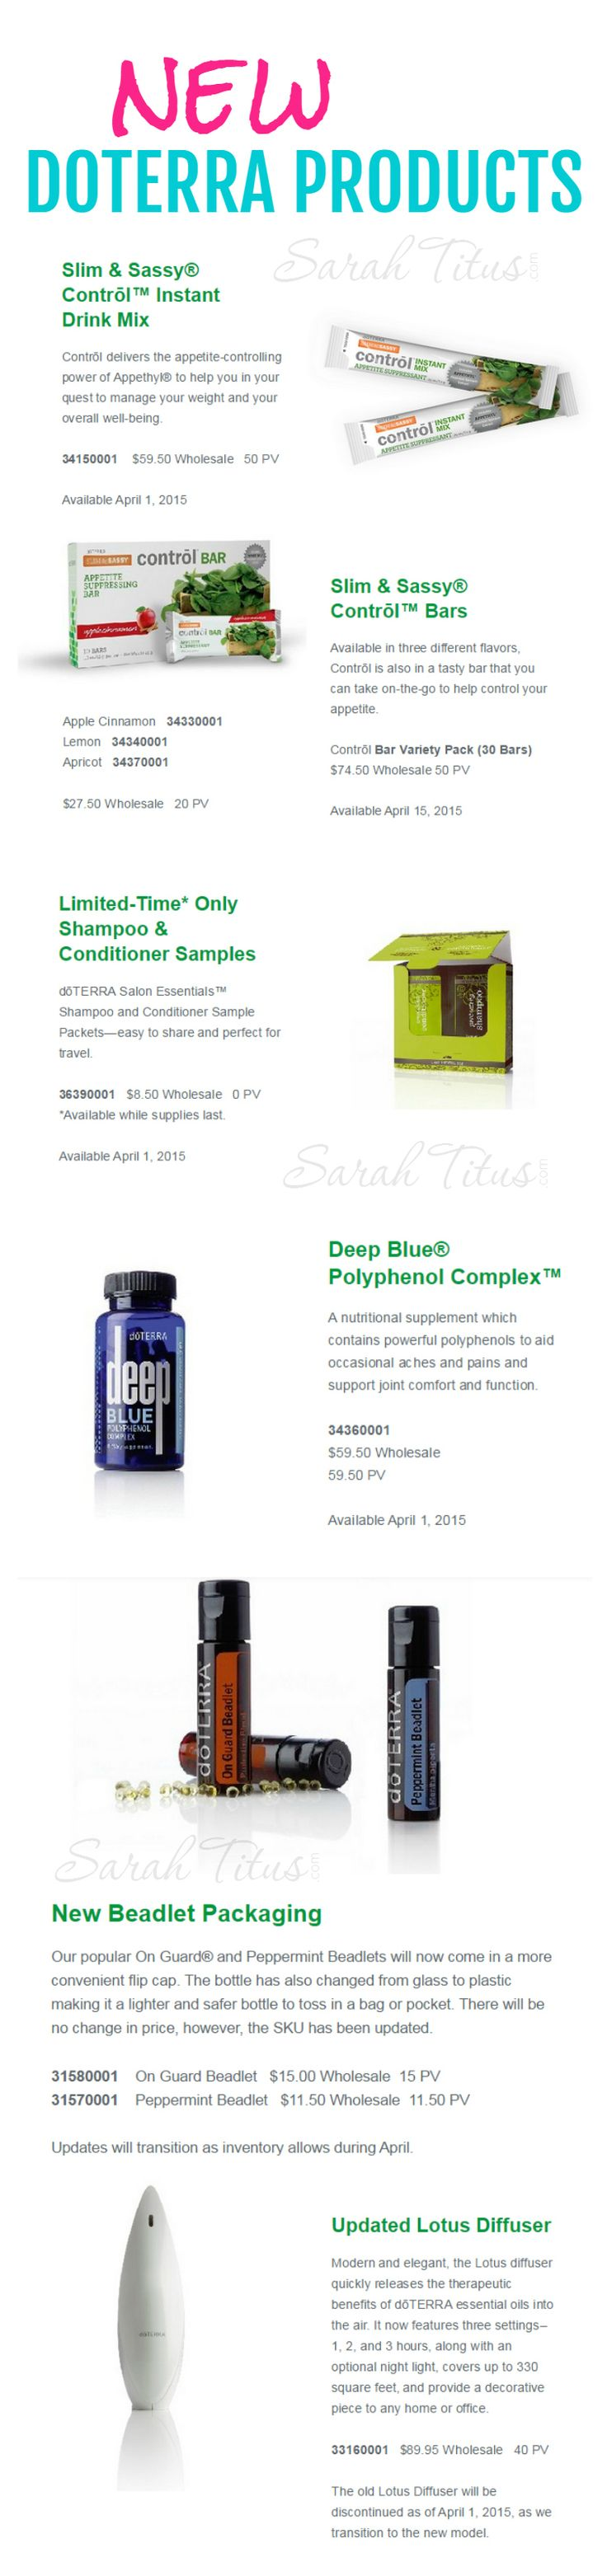 doTerra's New Products 2015 (Available in April)